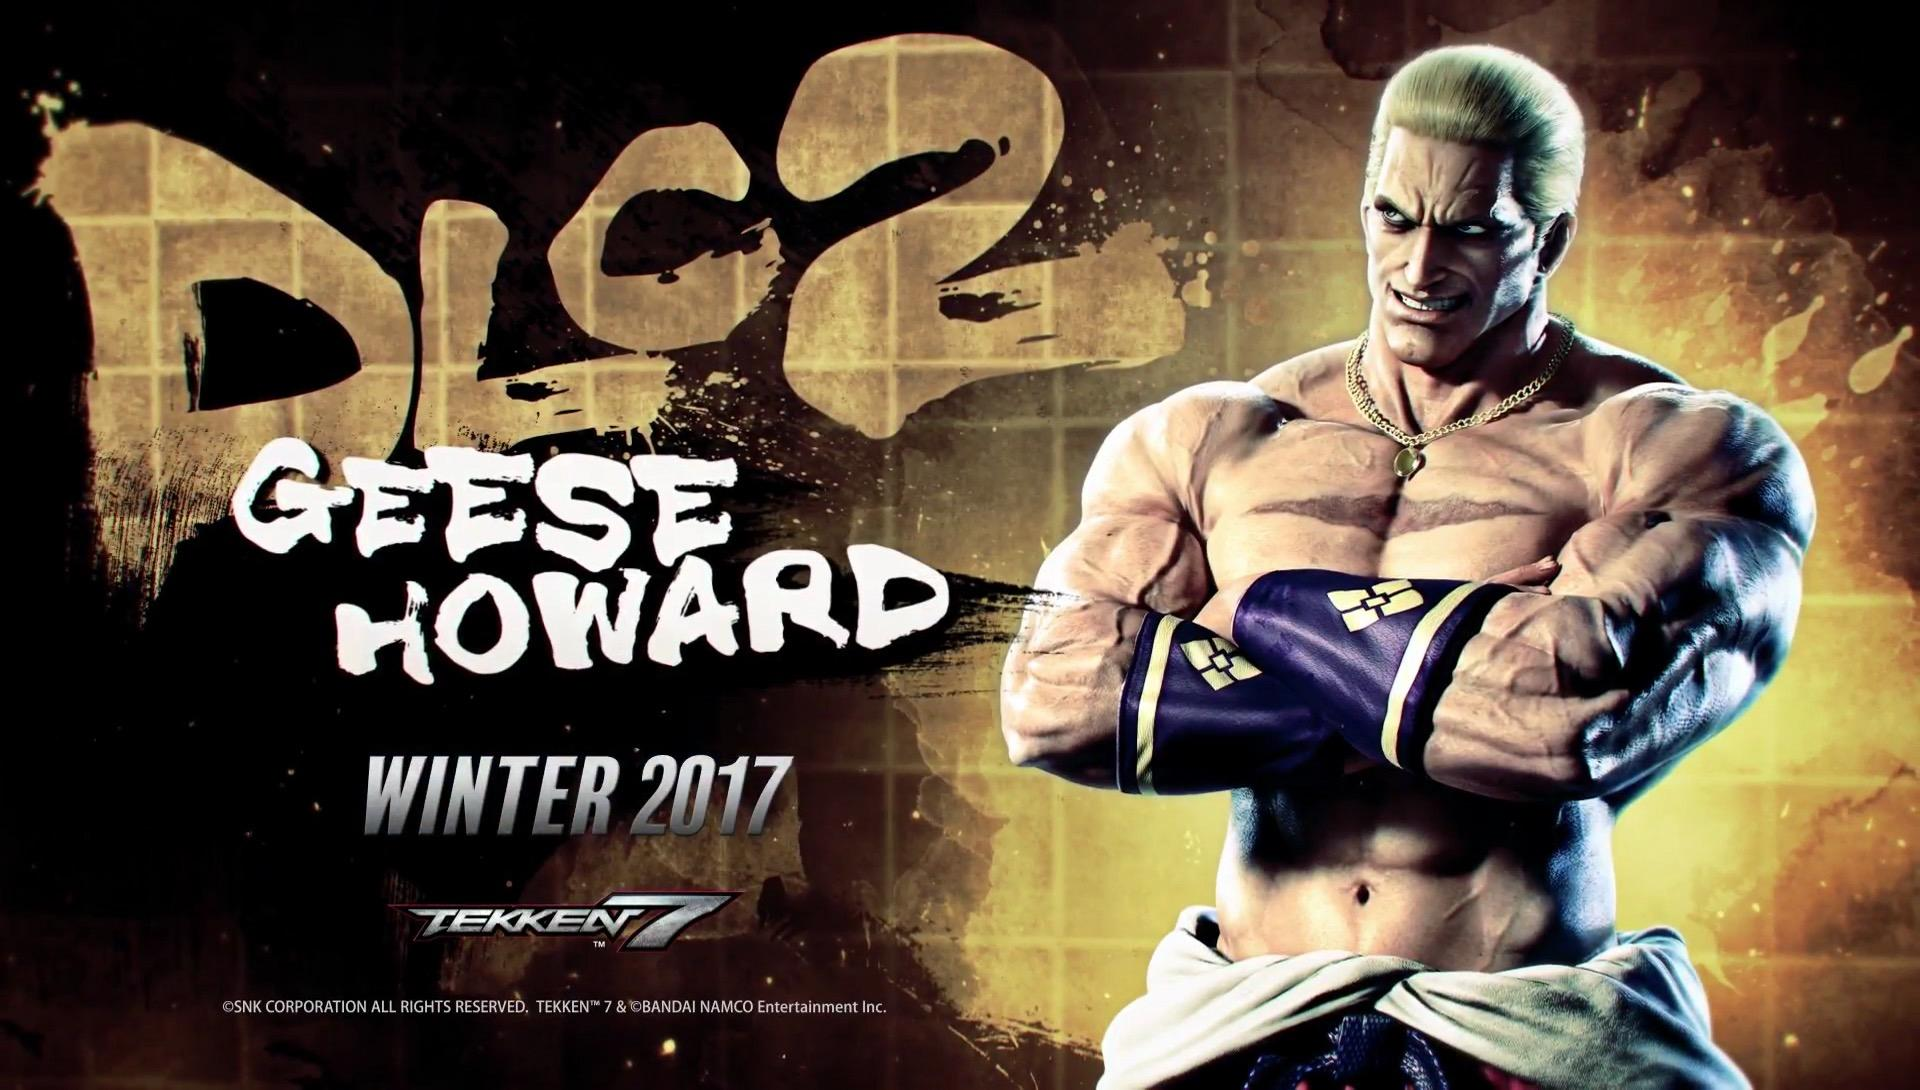 New Tekken 7 Character Announced: Geese Howard from Fatal Fury